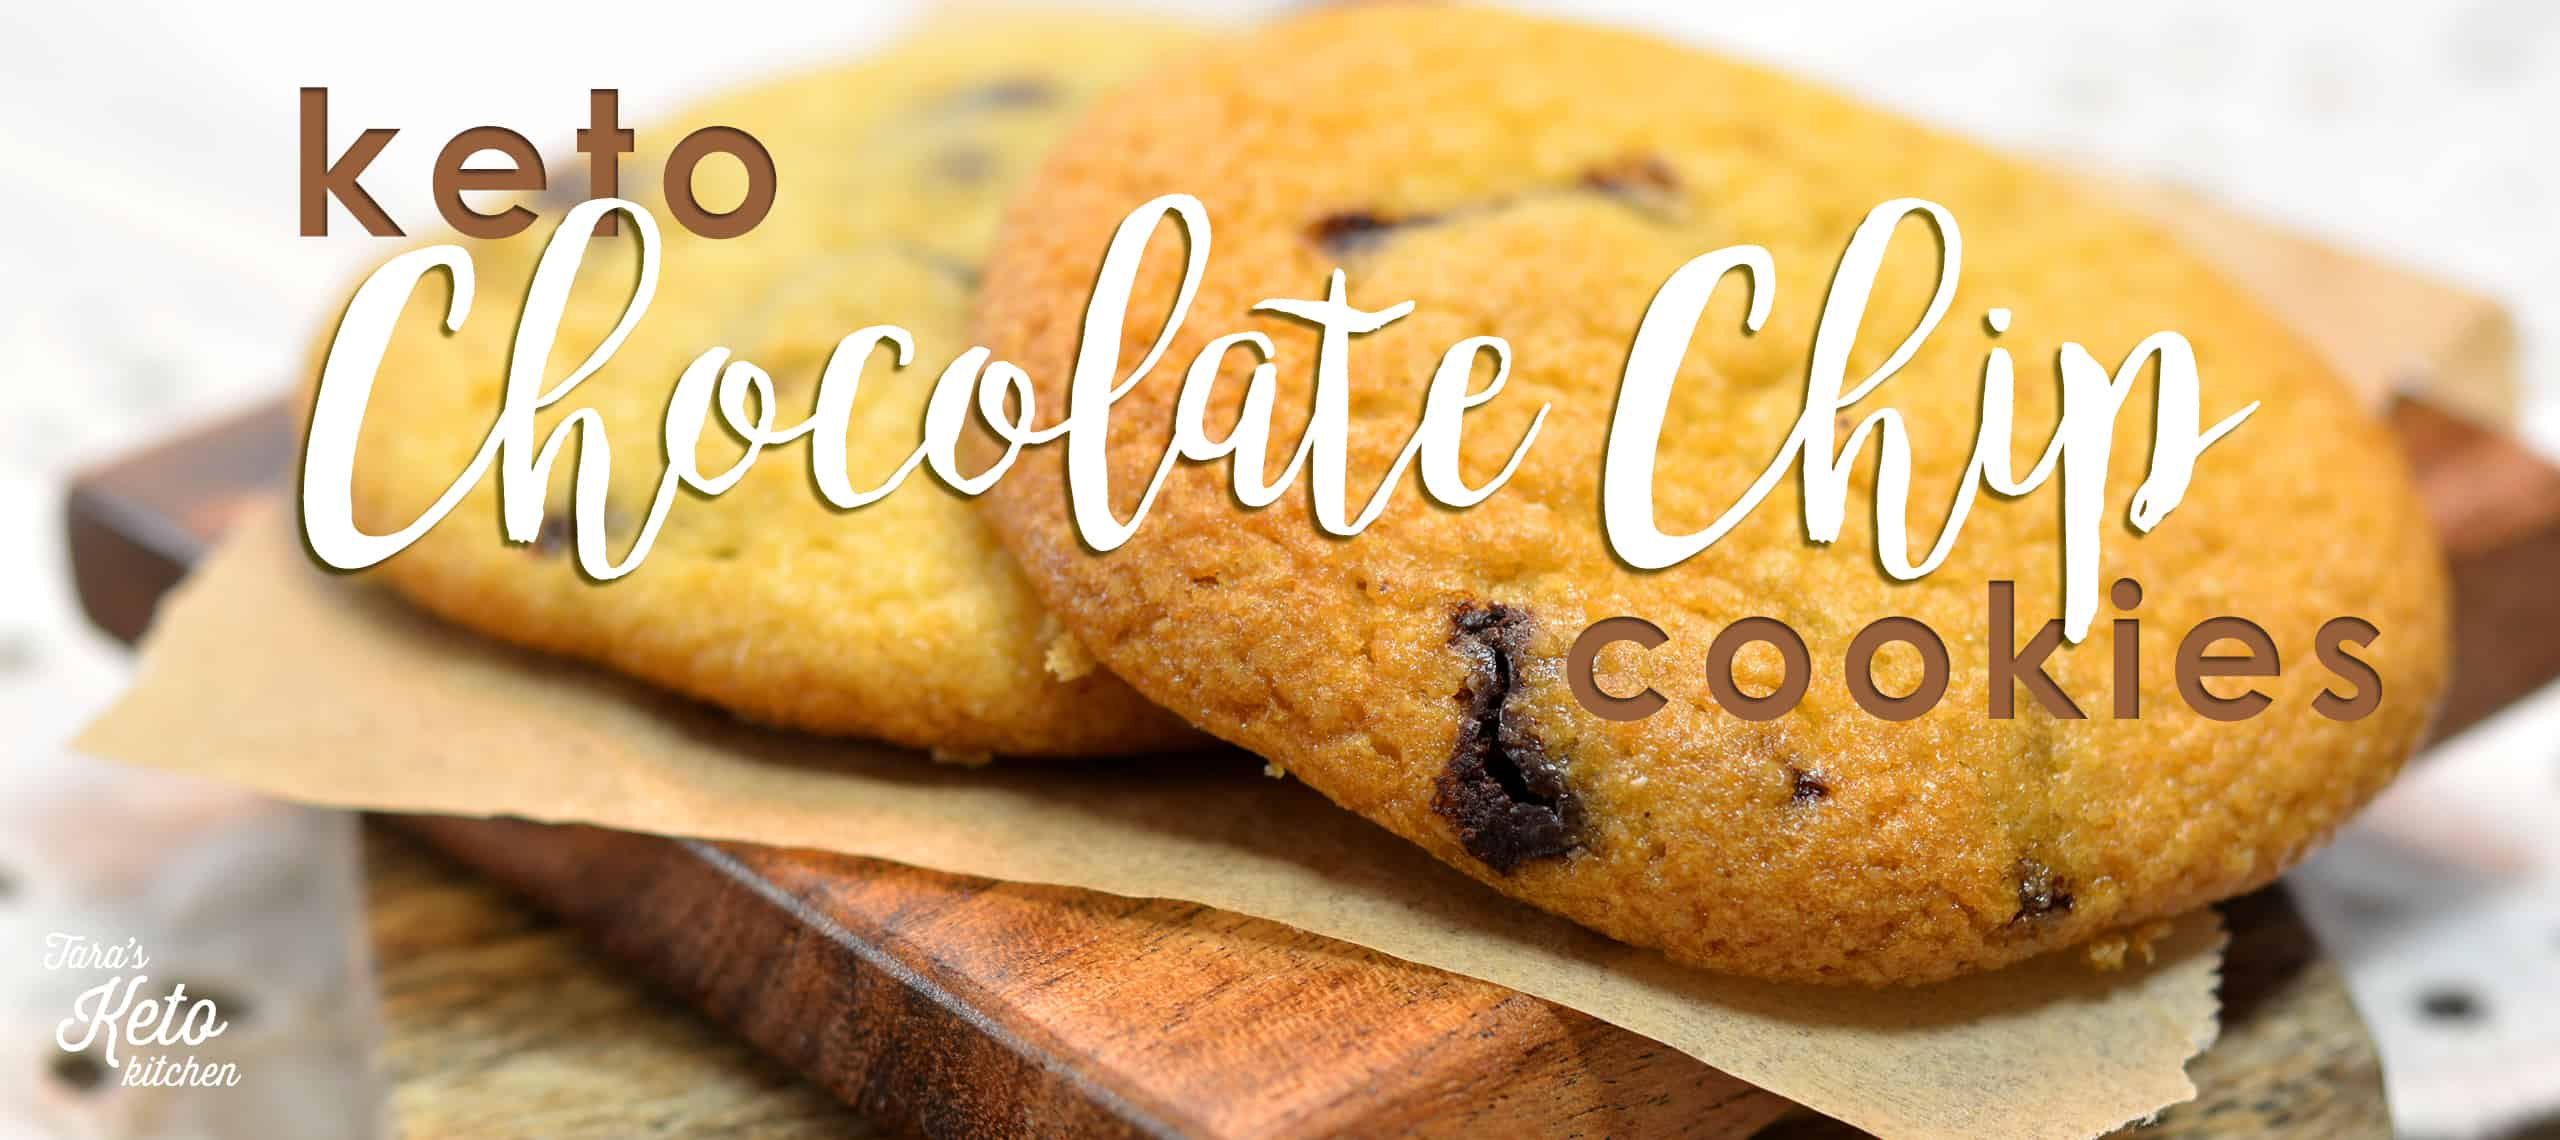 close up image of keto chocolate chip cookies with title